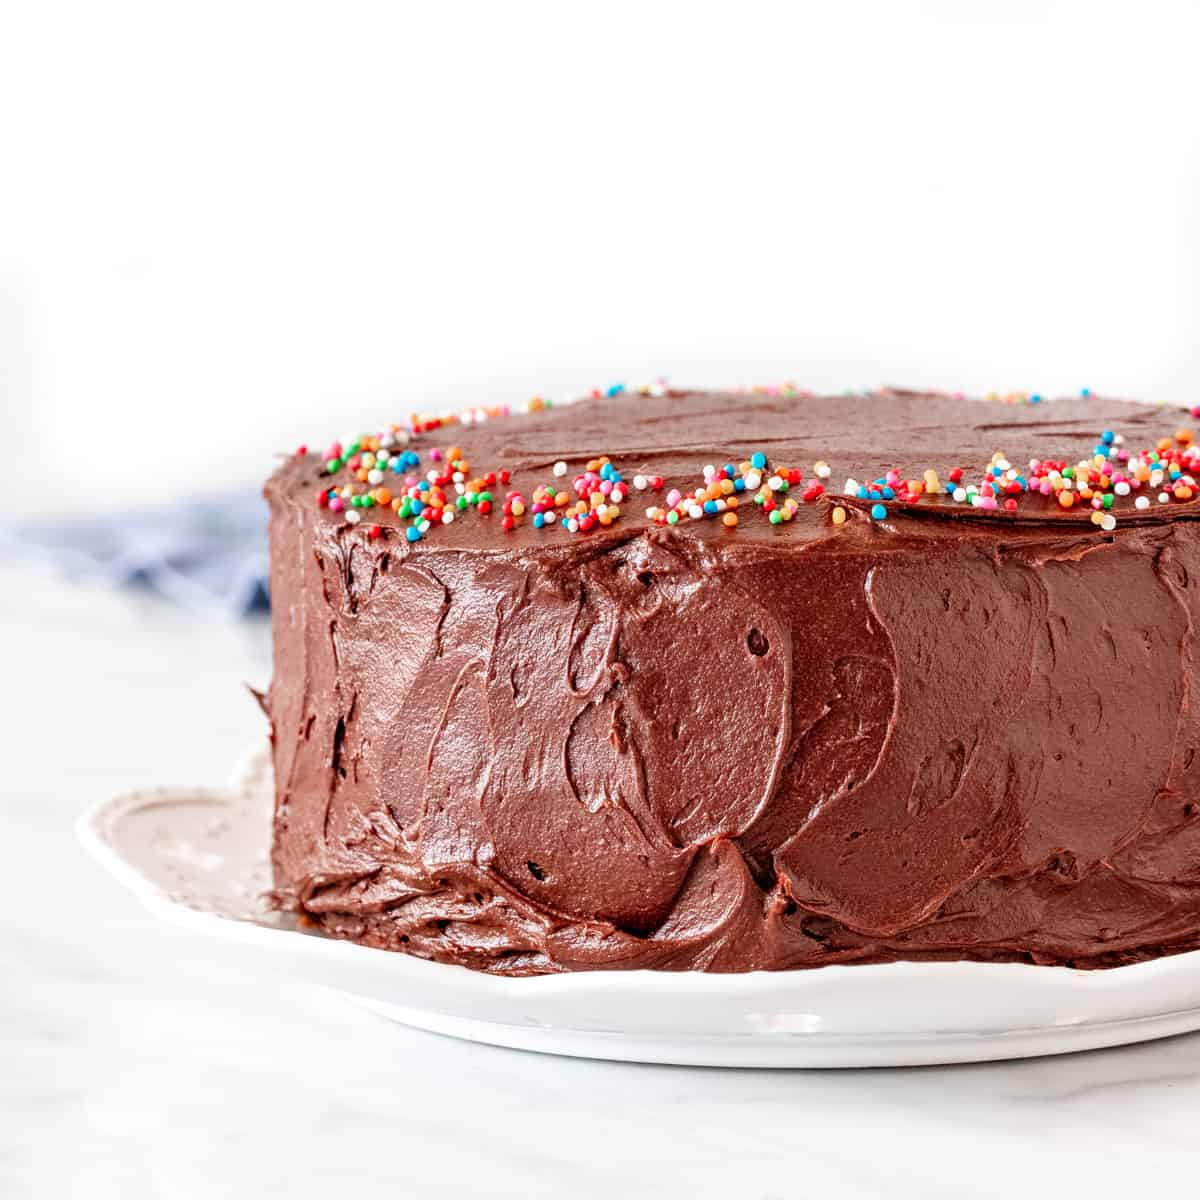 Birthday cake with chocolate frosting